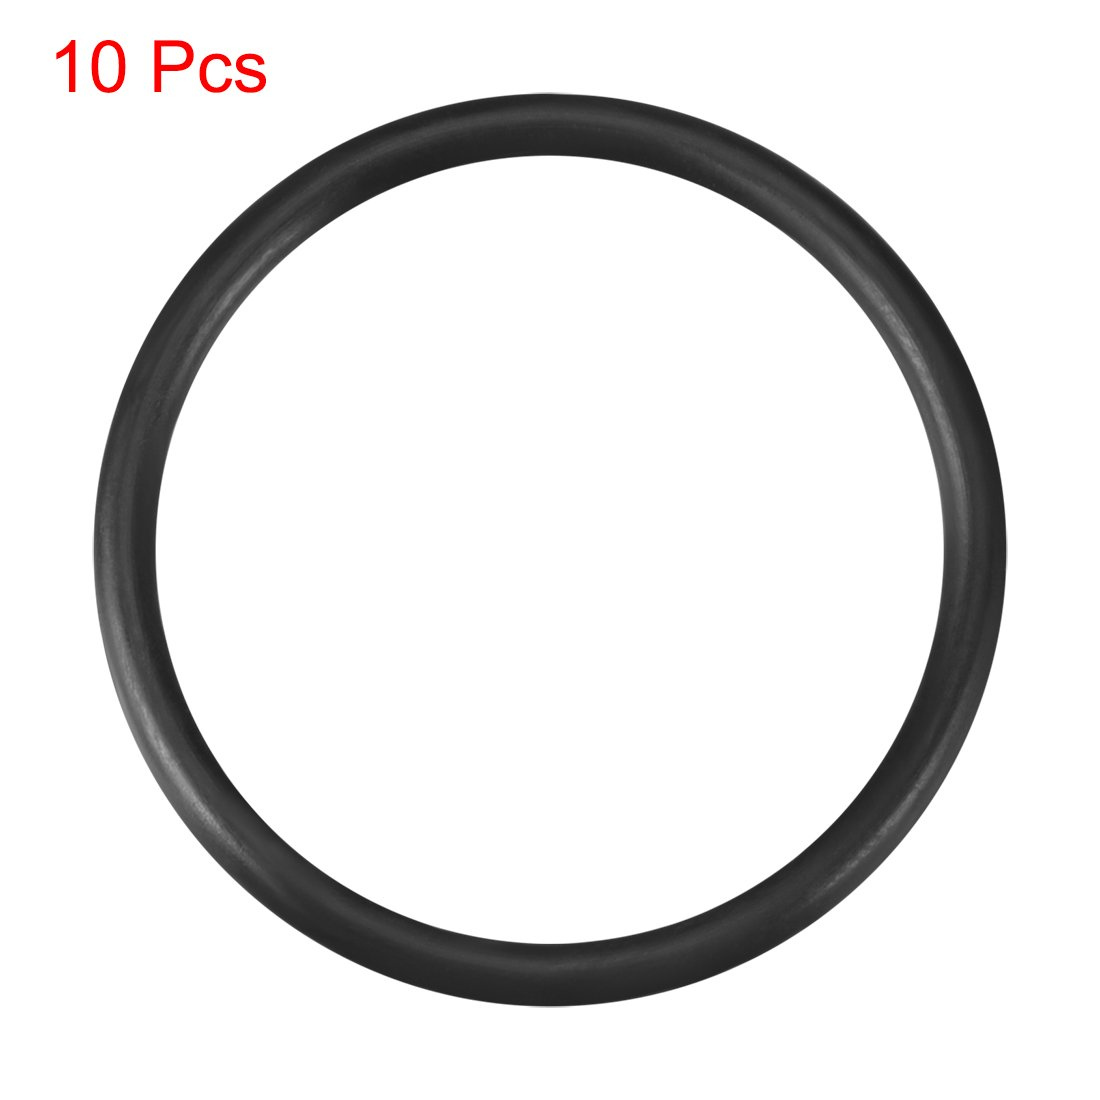 Othmro 10.5mmx6.9mmx1.8mm Black Nitrile Rubber(NBR) Sealing NBR O Rings Gaskets Washers Grommets 20pcs